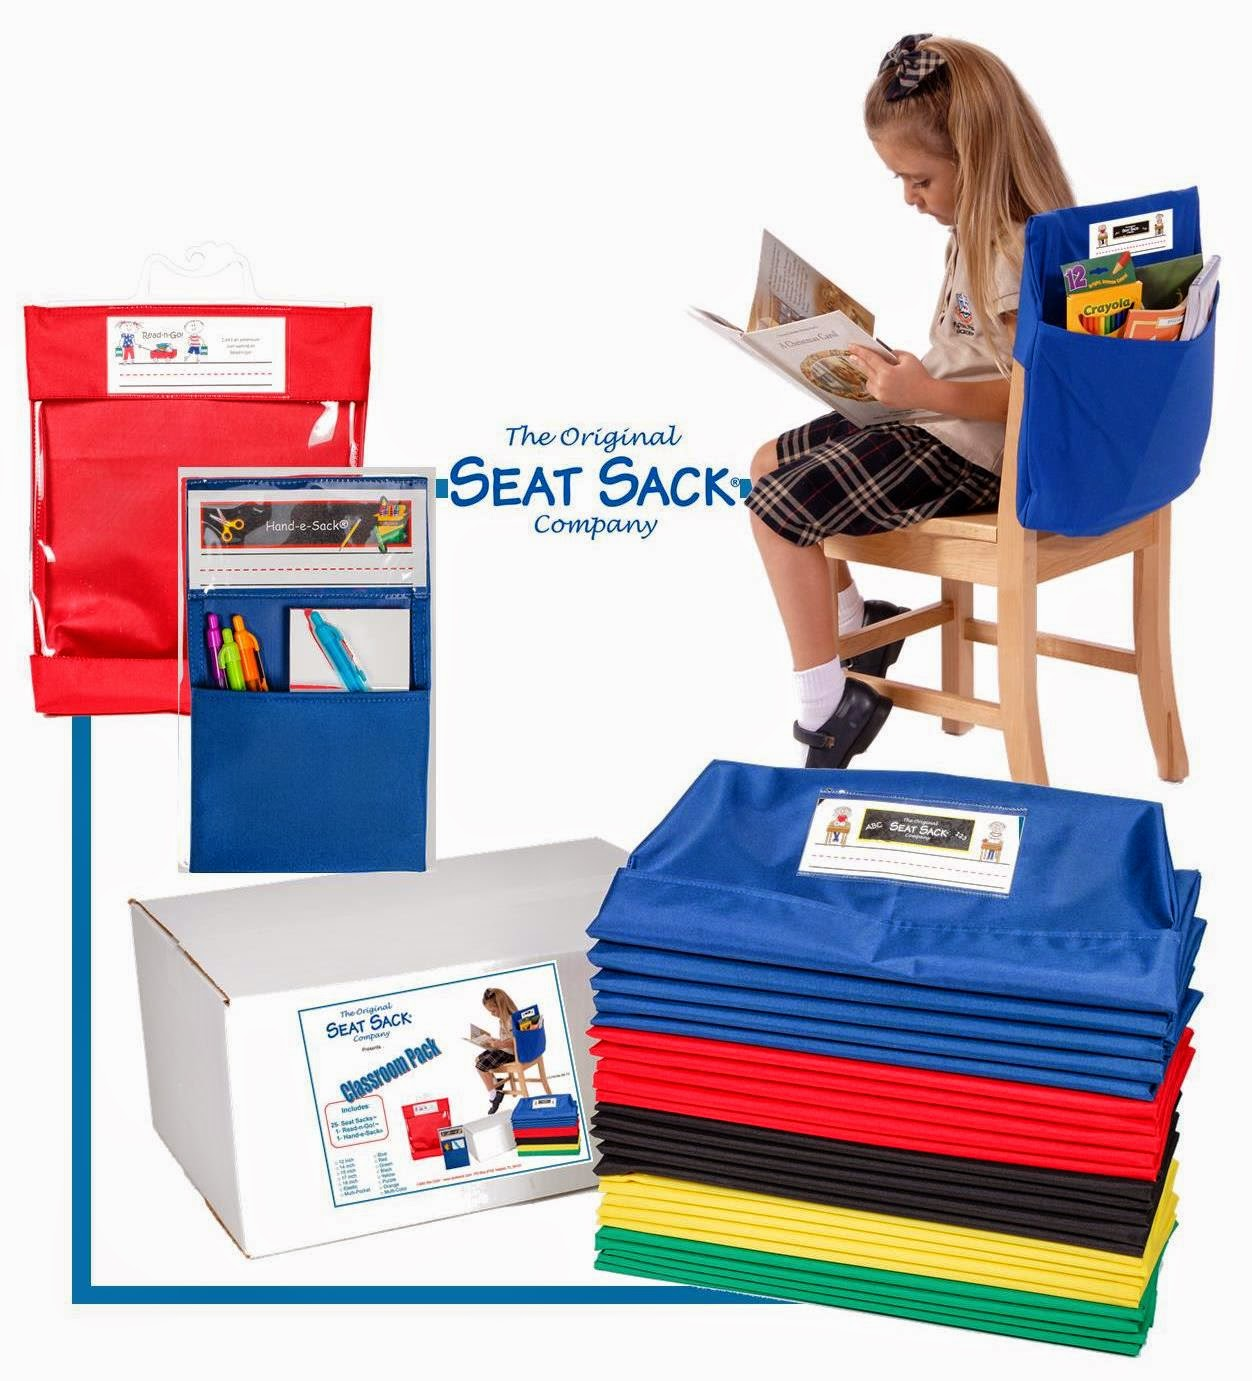 96f76615ded9 Teaching With Love and Laughter  Using Seat Sacks Efficiently and a ...